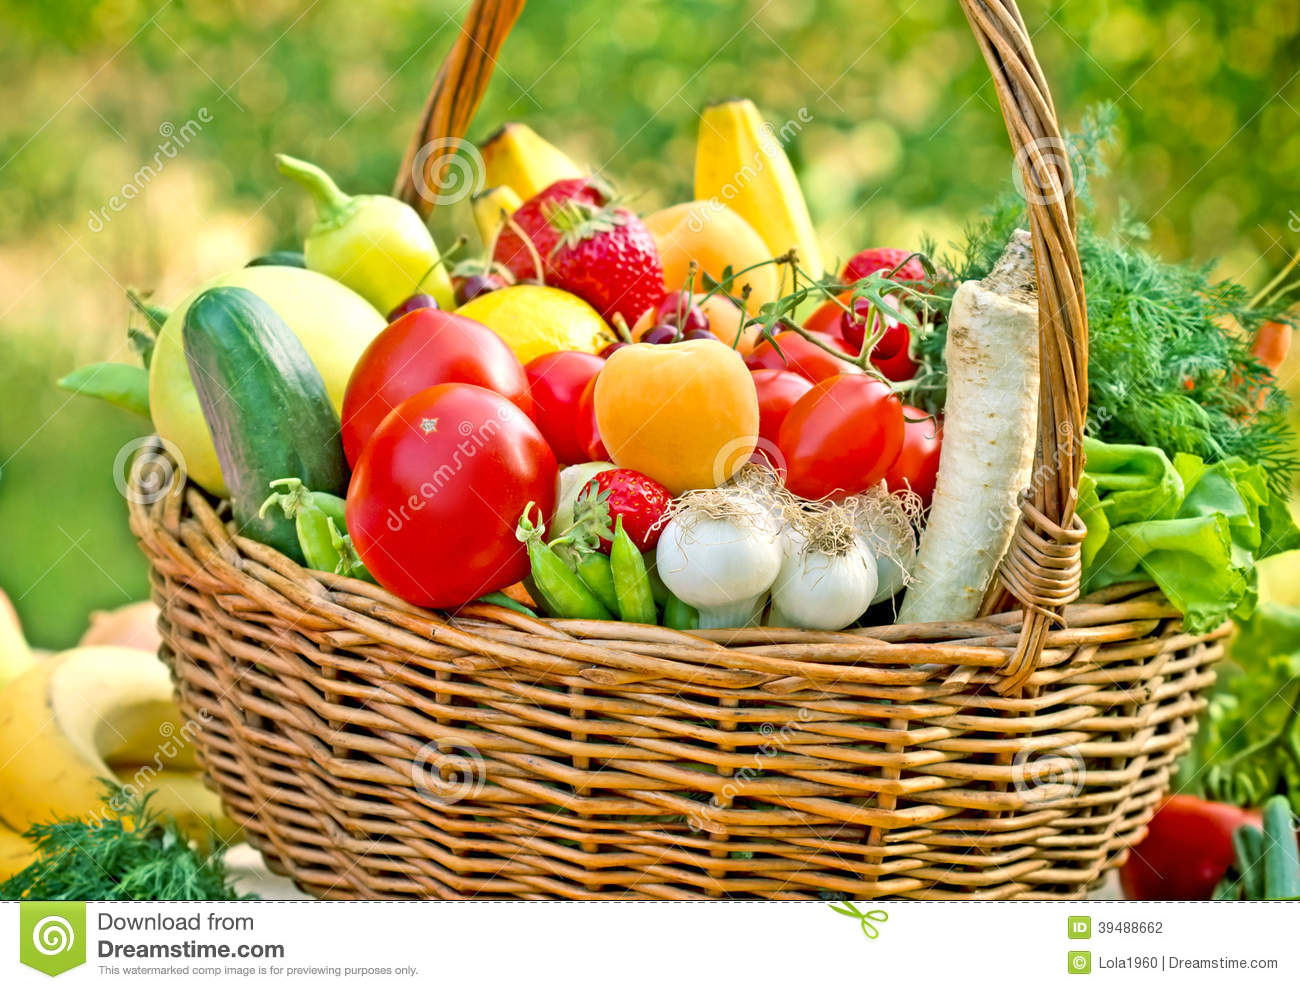 Table Top Fruit Basket Wicker Basket Full Of Fruits And Vegetables Stock Photo